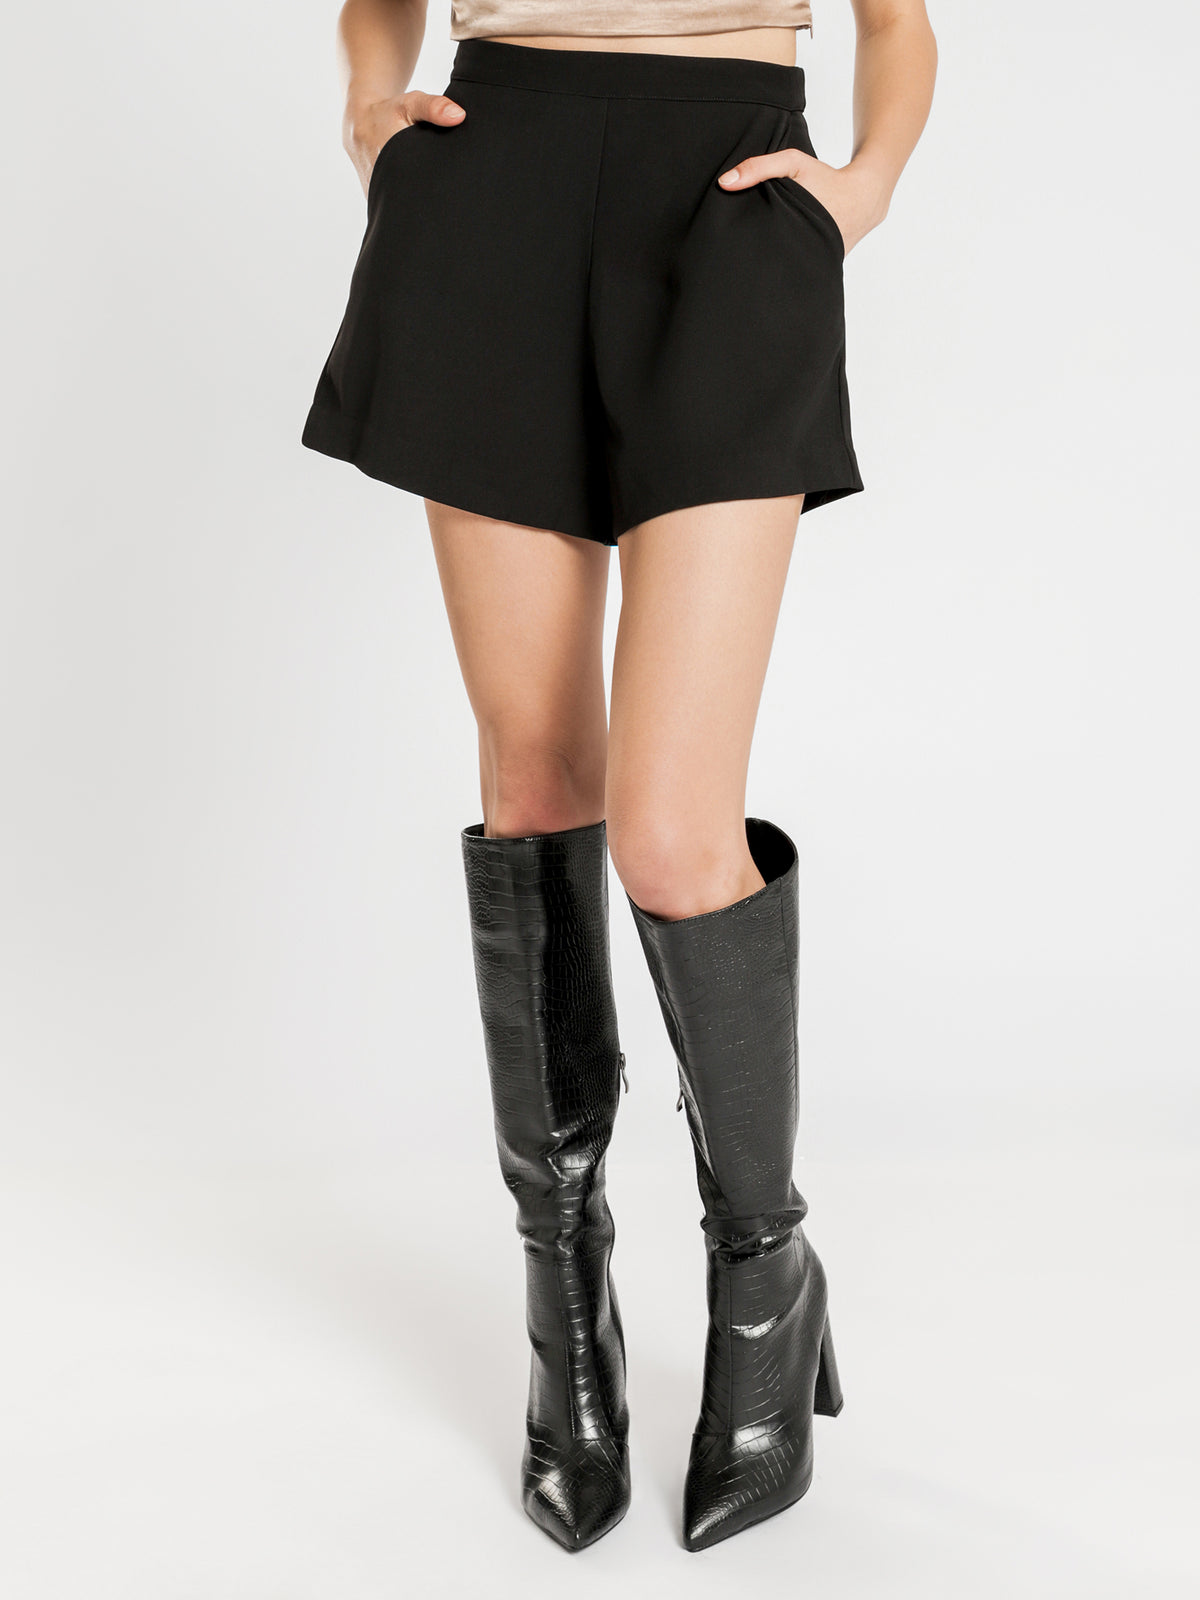 Remy Tailored Shorts in Black